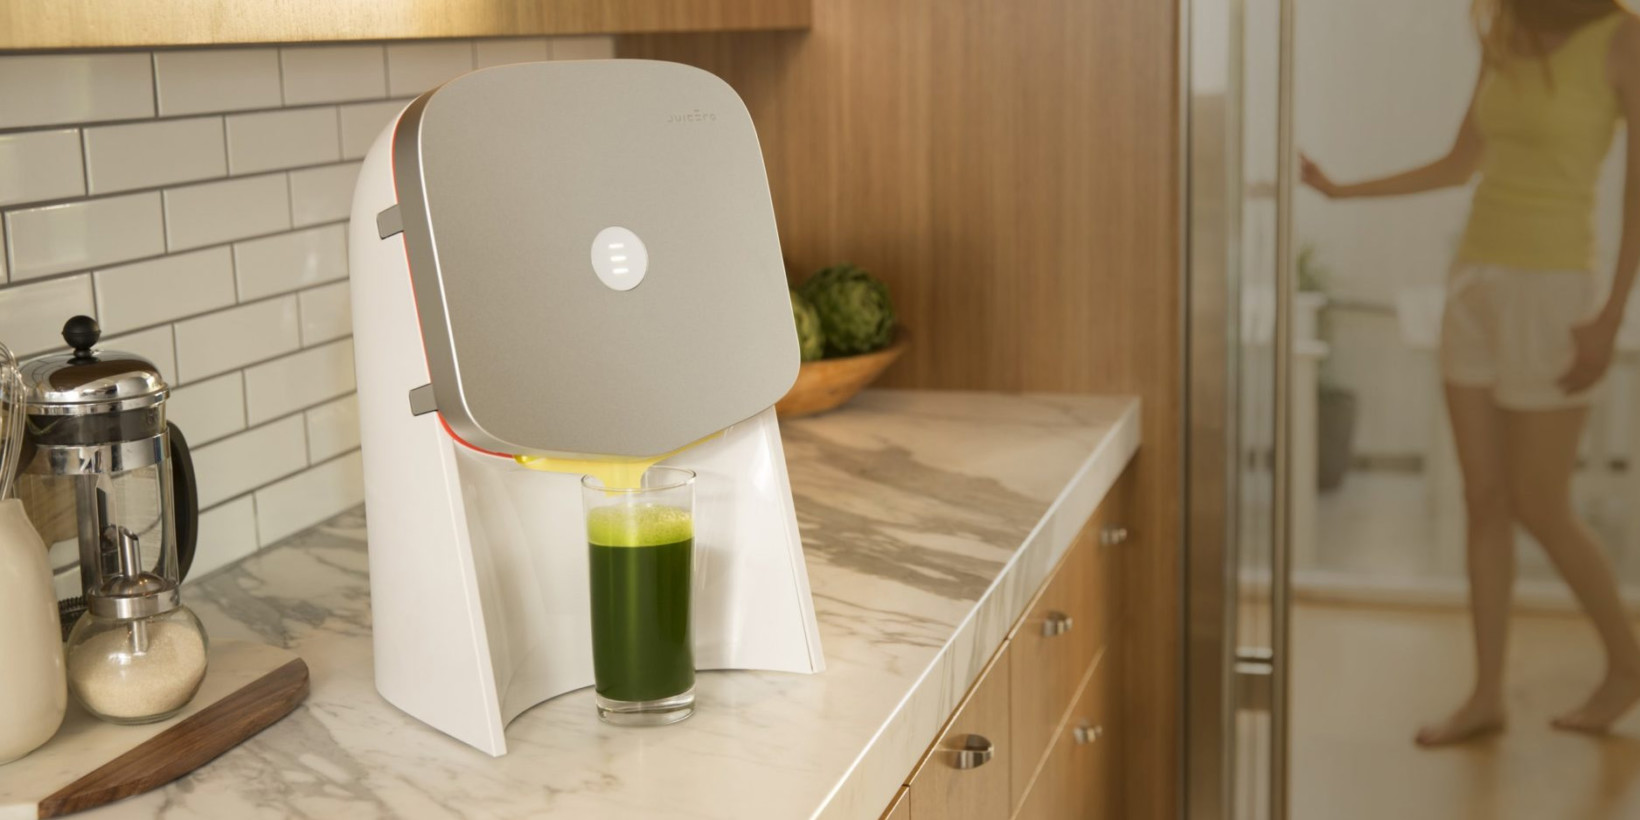 photo image This $400 juicer that does nothing but squeeze juice packs is peak Silicon Valley